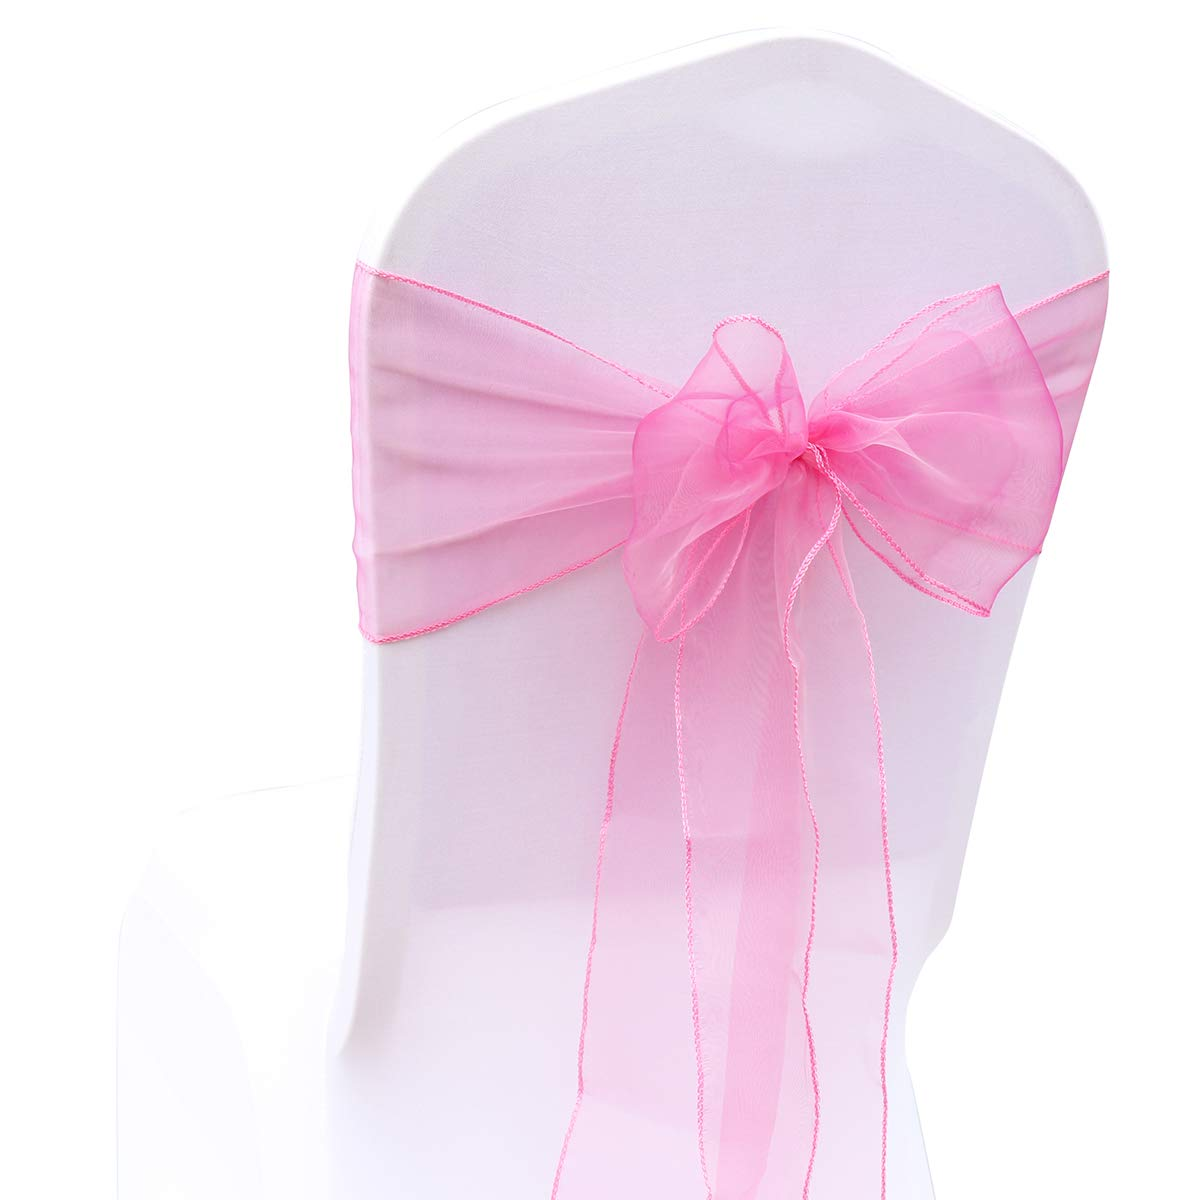 BIT.FLY 50 Pcs Organza Chair Sashes for Wedding Decoration Banquet Party Event Supplies Chair Bows Ties Chair Cover Bands - Fuchsia